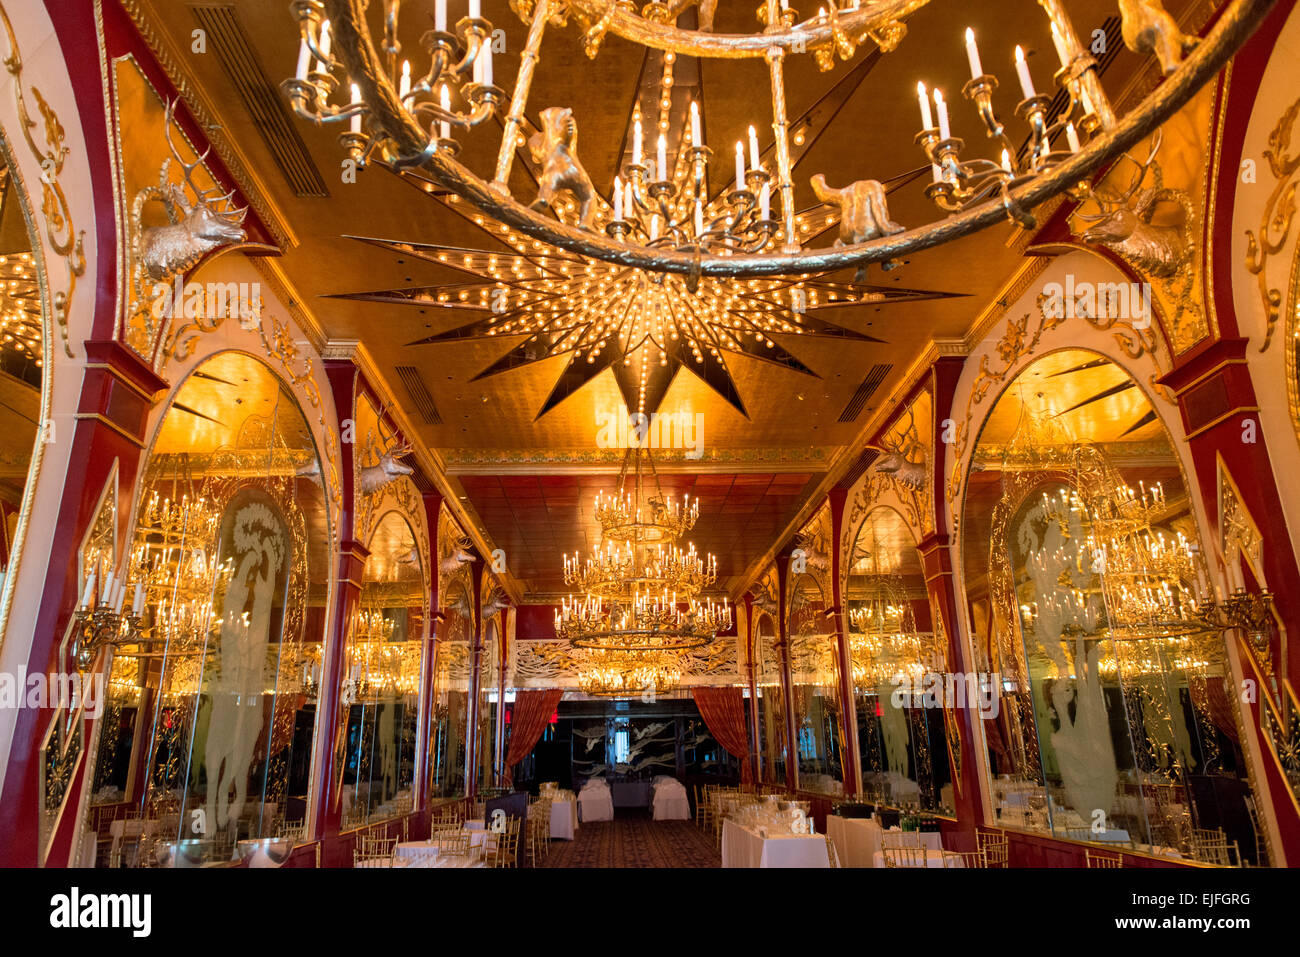 The Russian Tea Room Stock Photos & The Russian Tea Room Stock ...